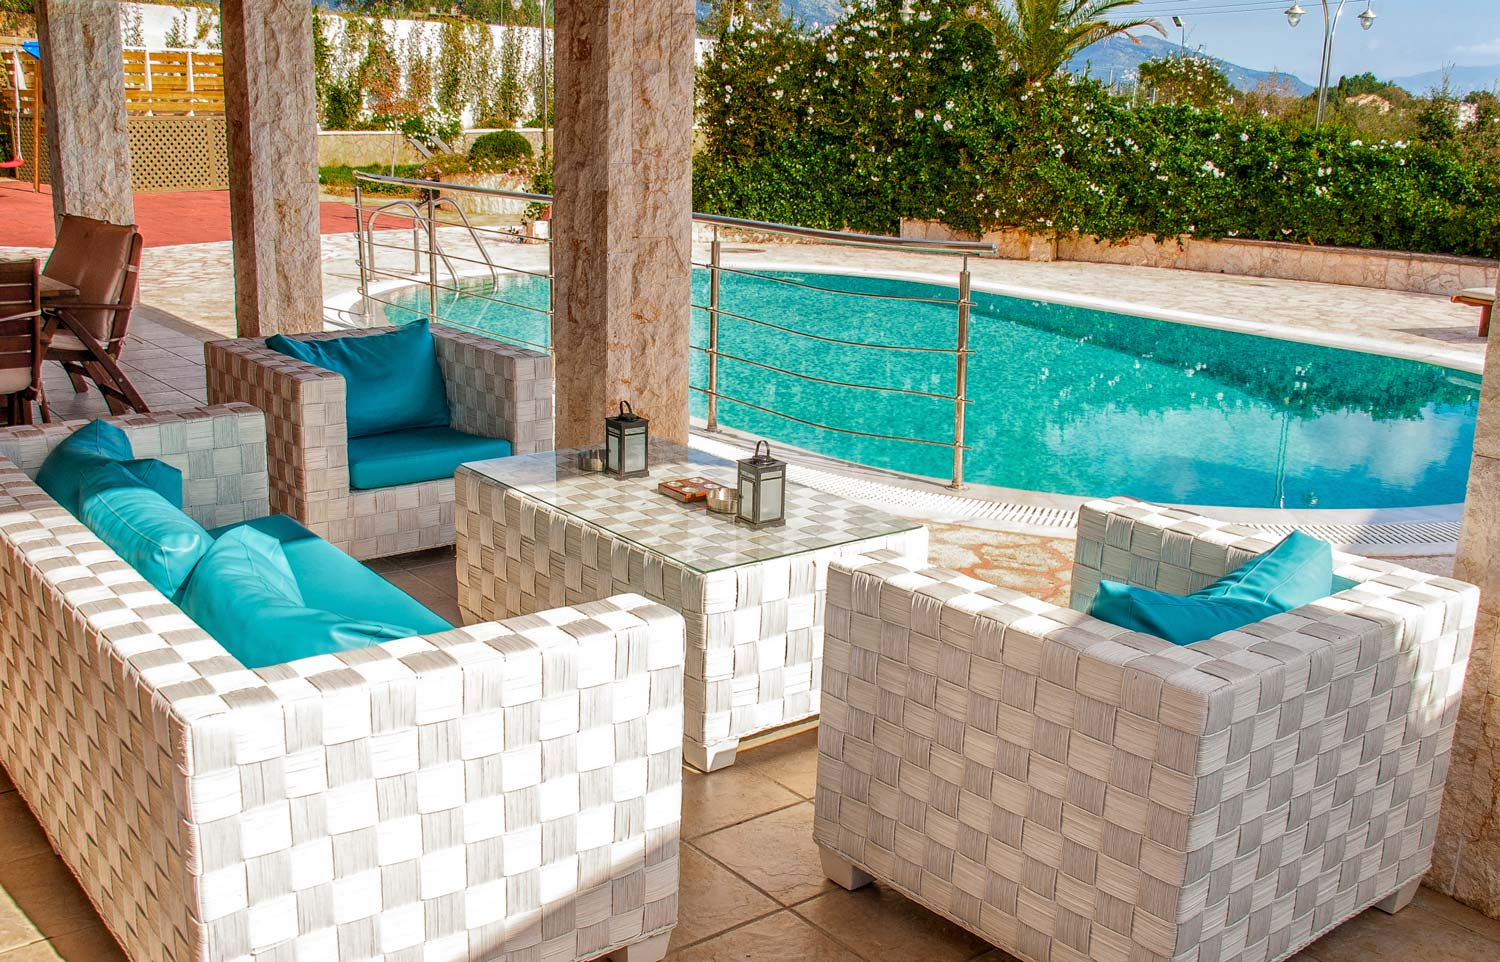 Luxury Holiday Villa With Pool Emily Family Luxury Holiday Pool Airbnb Villa Dassia Corfu 30